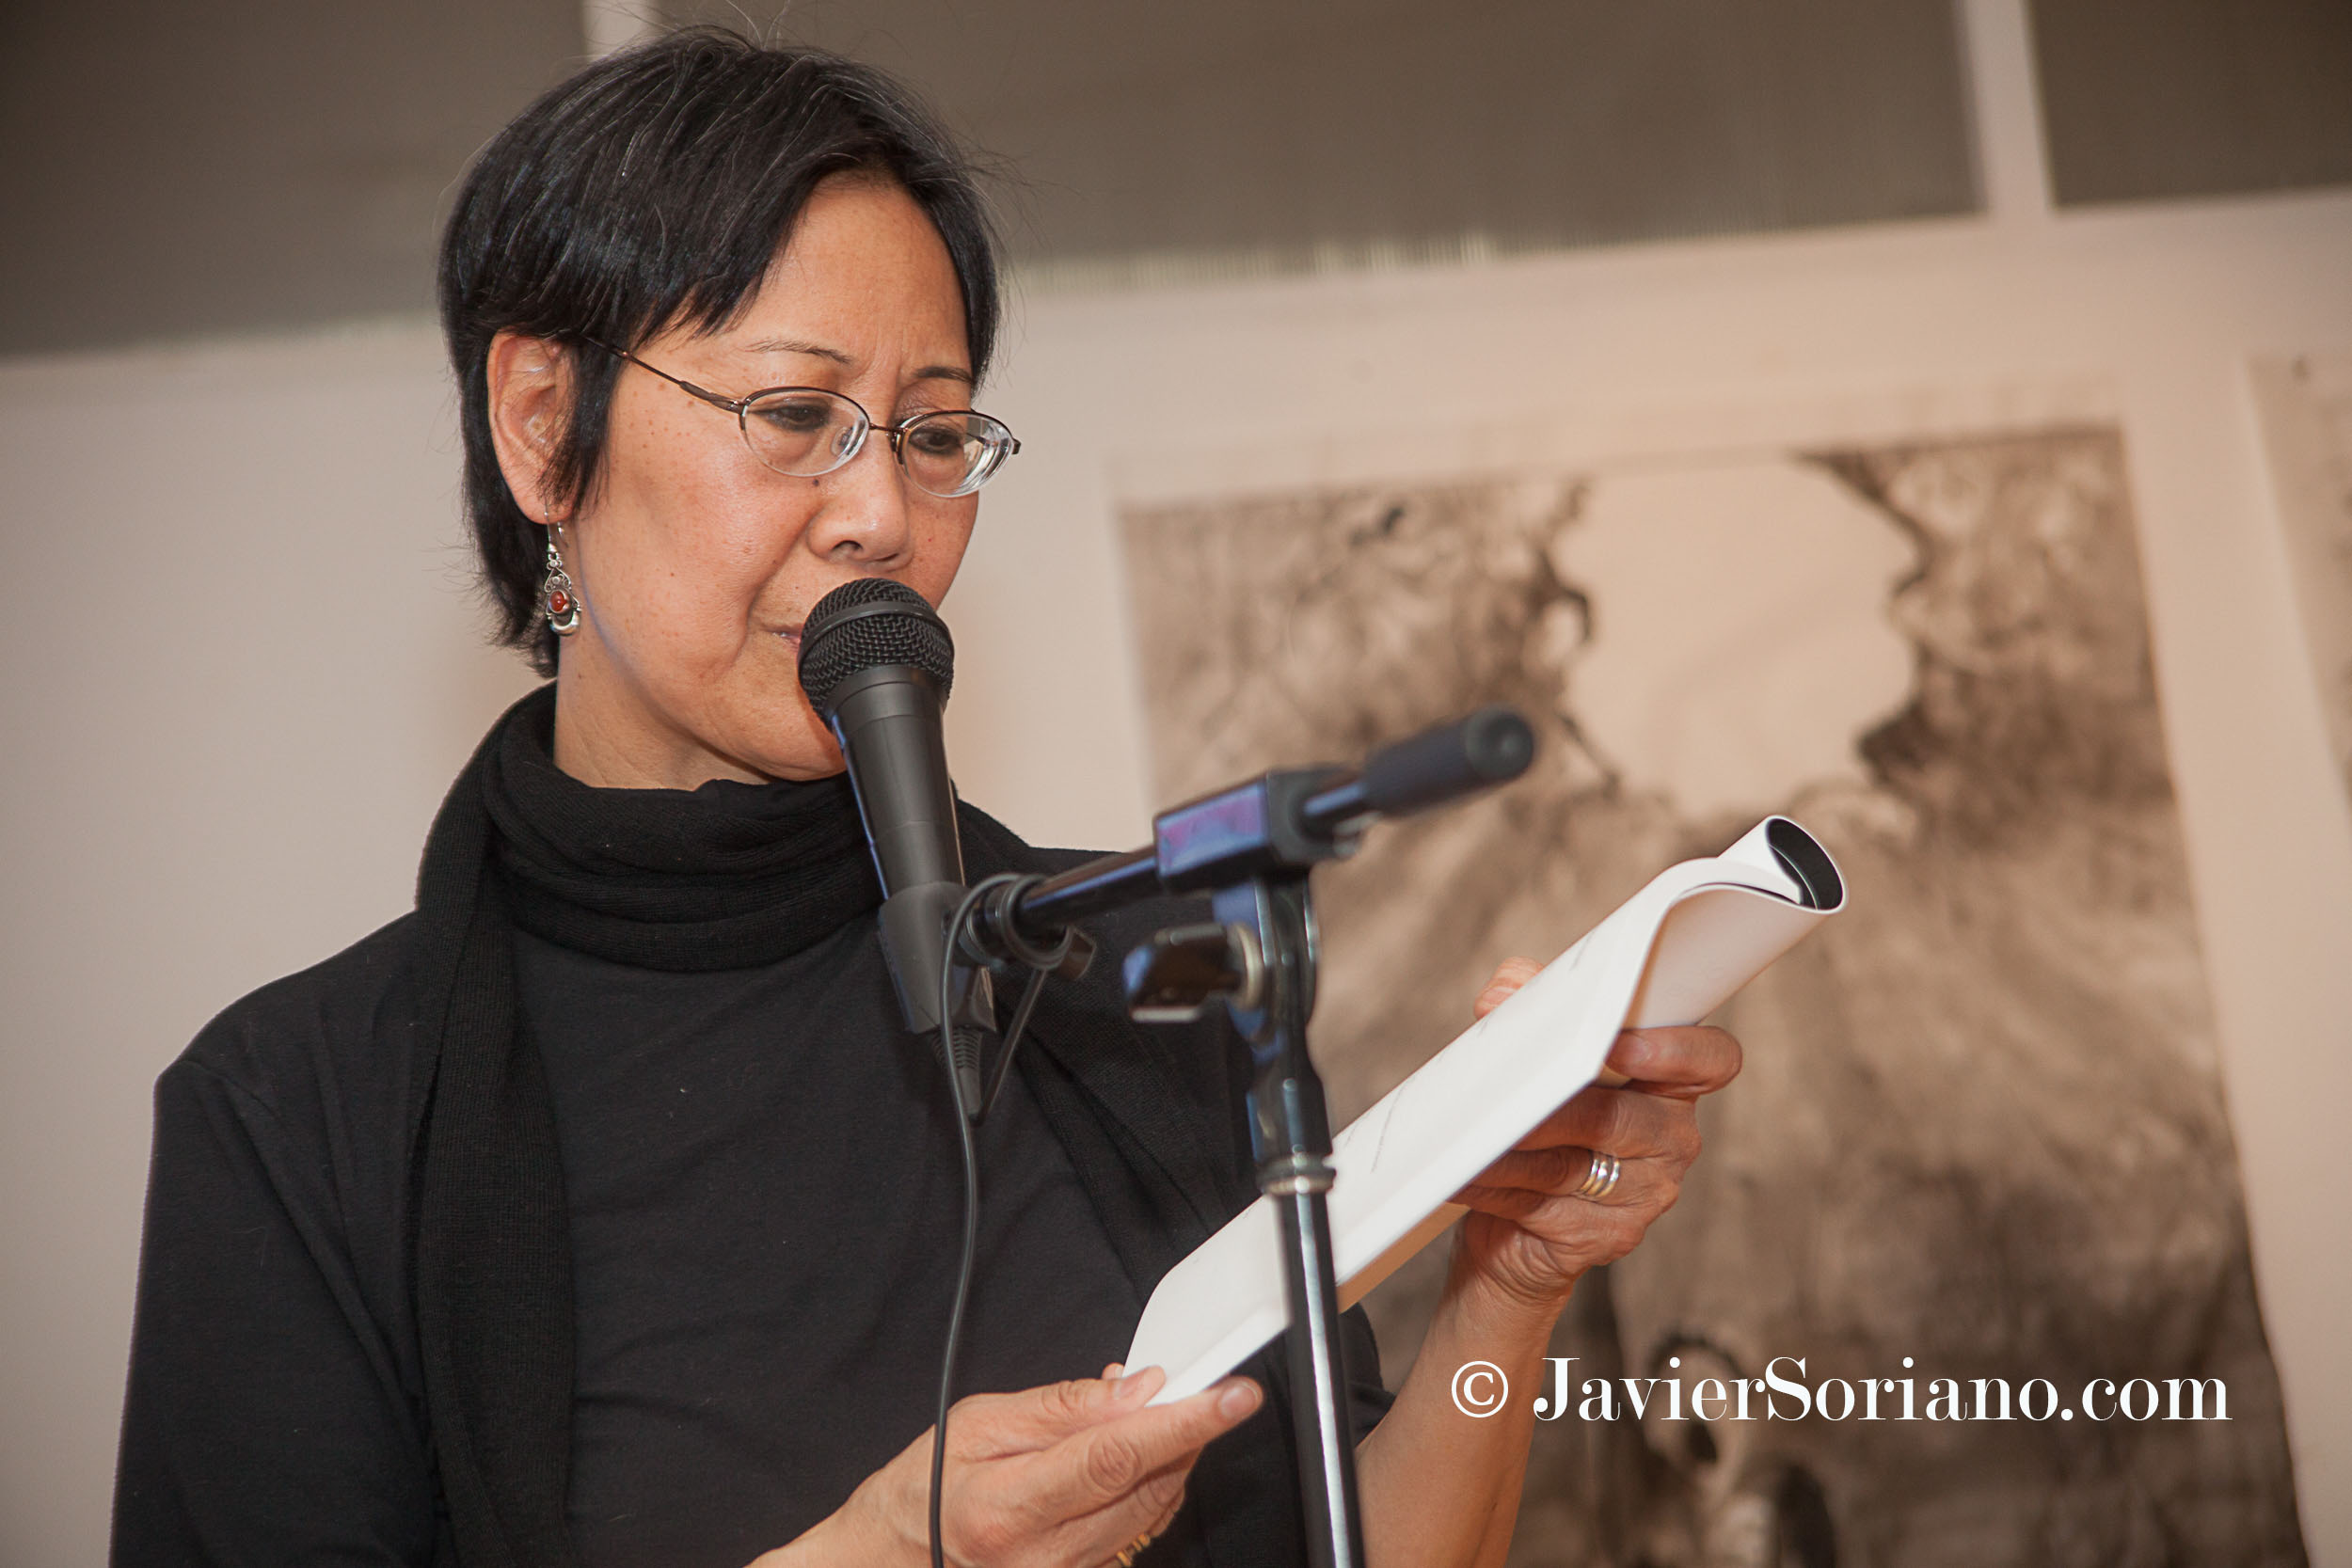 1/23/2015 NYC – Fay Chiang celebrating her 63rd birthday. Photo by Javier Soriano/www.JavierSoriano.com